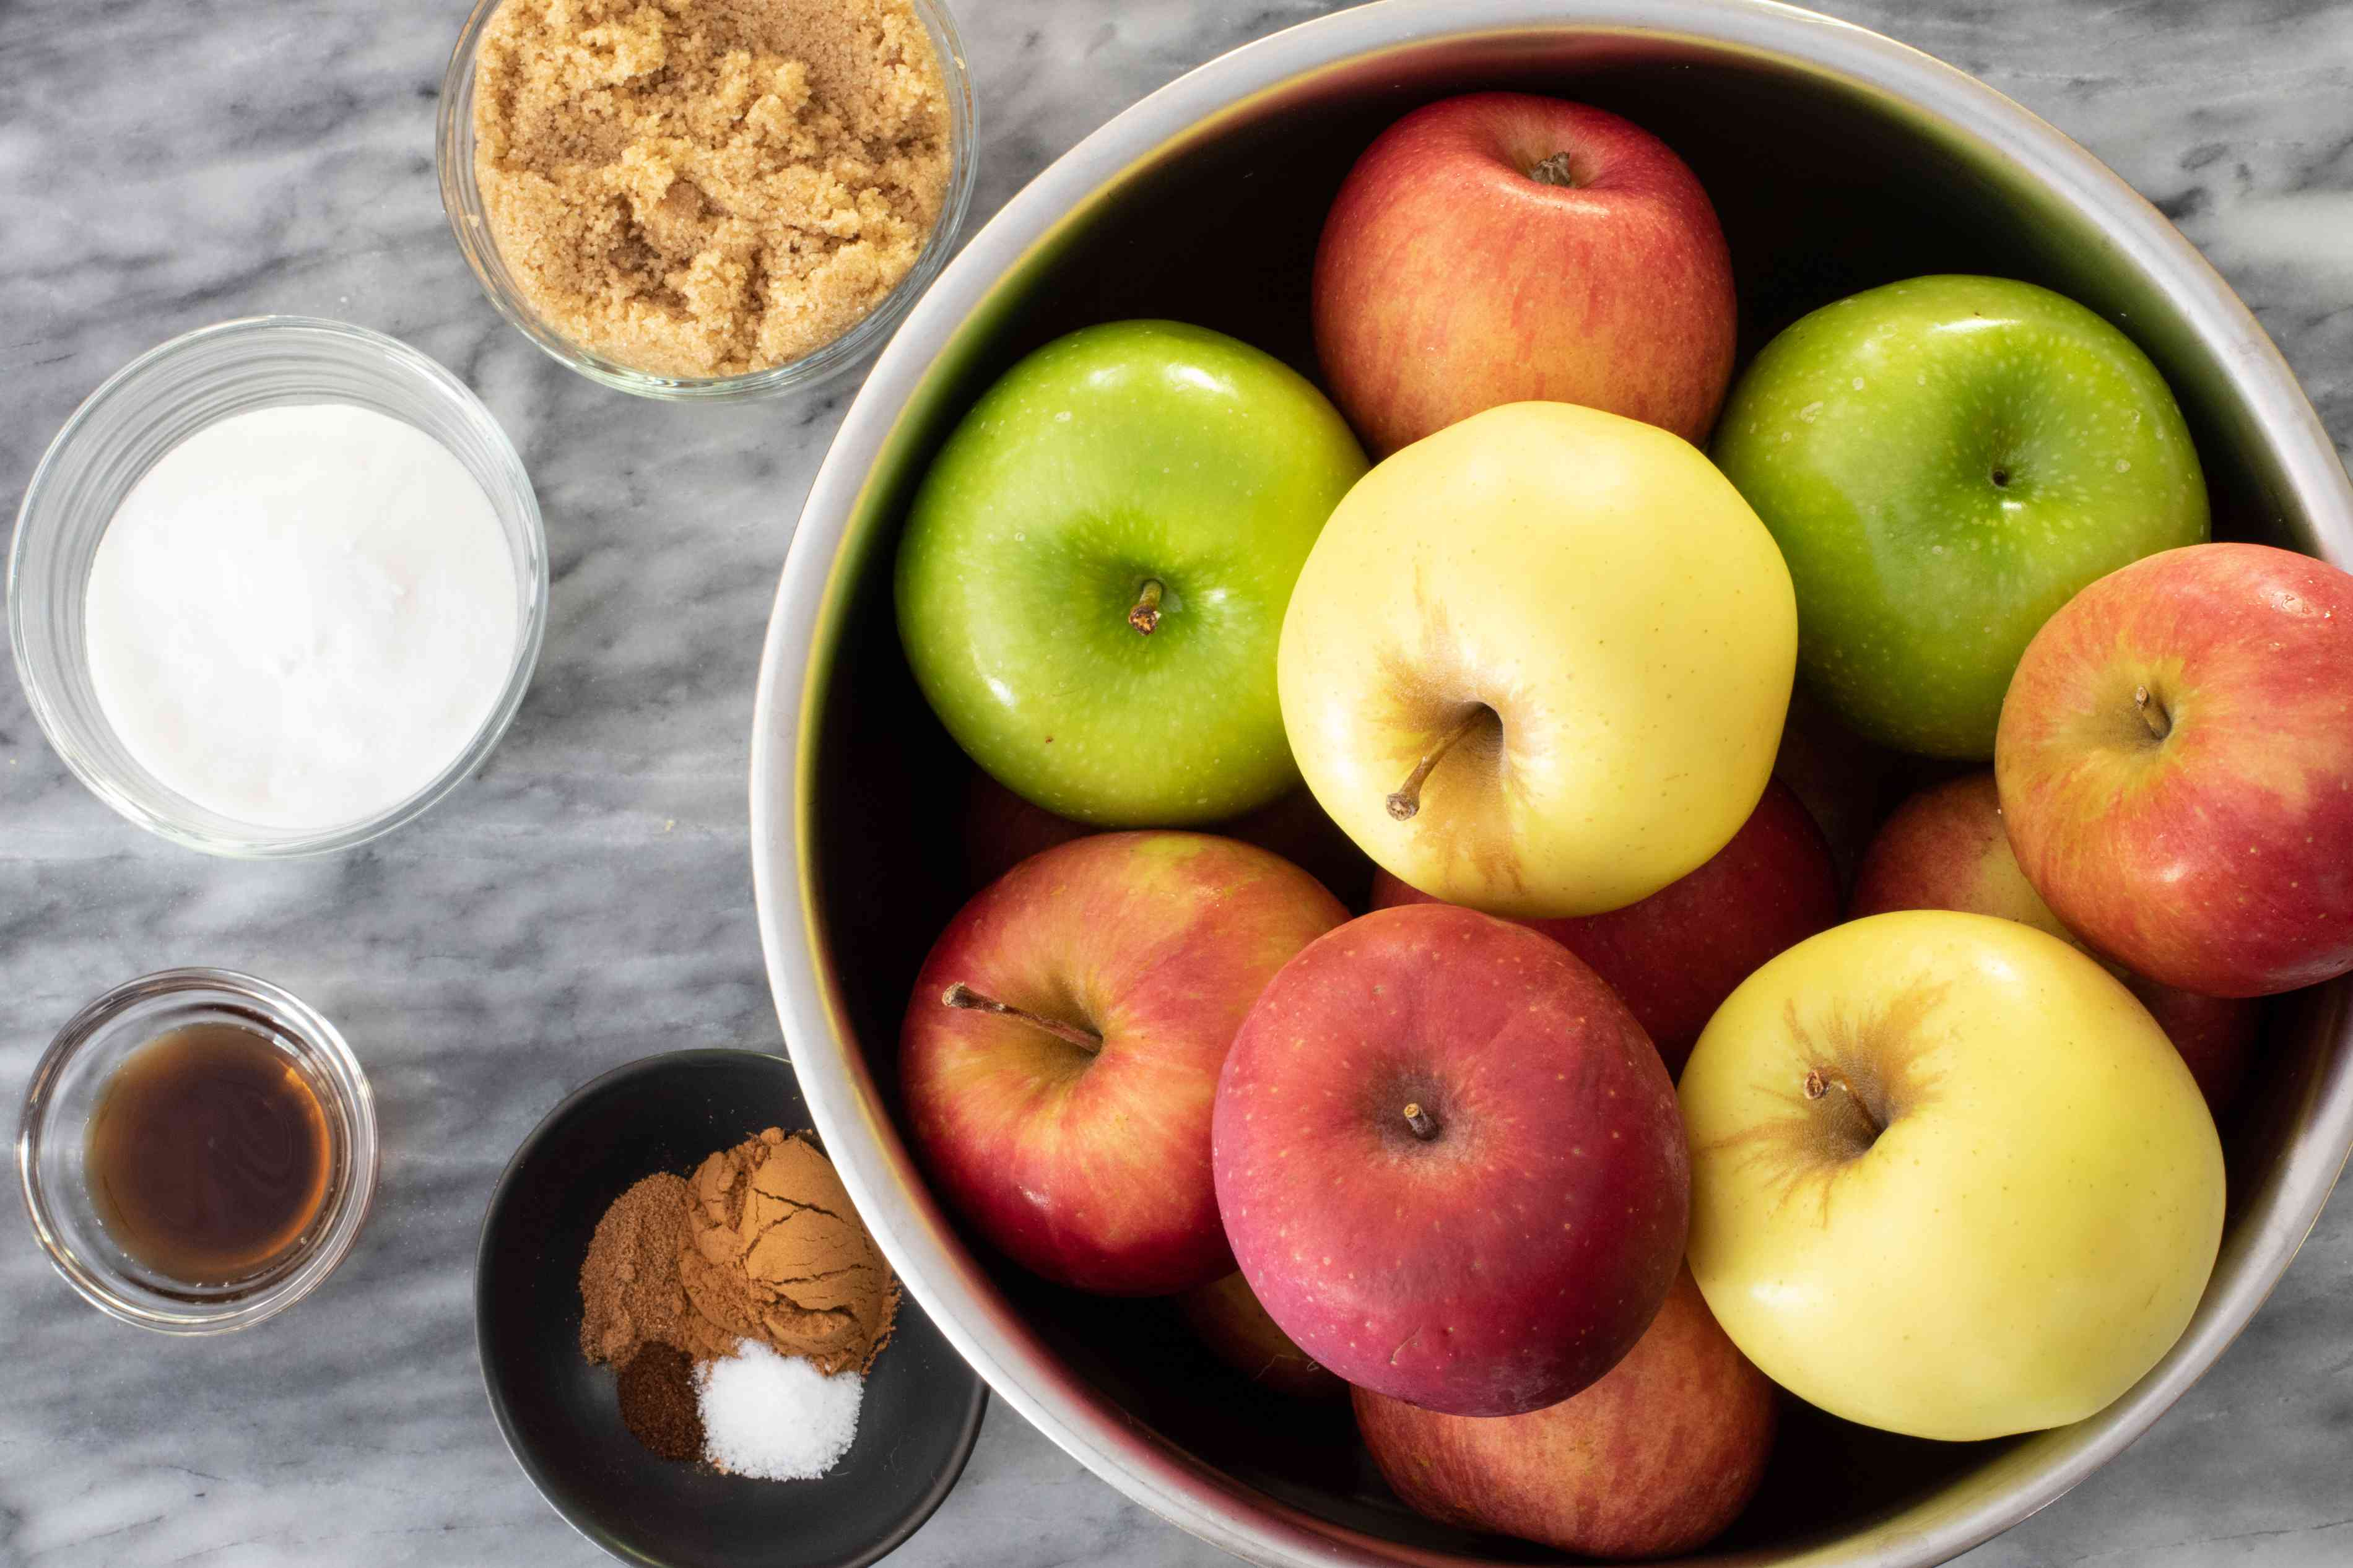 ingredients for slow cooker apple butter